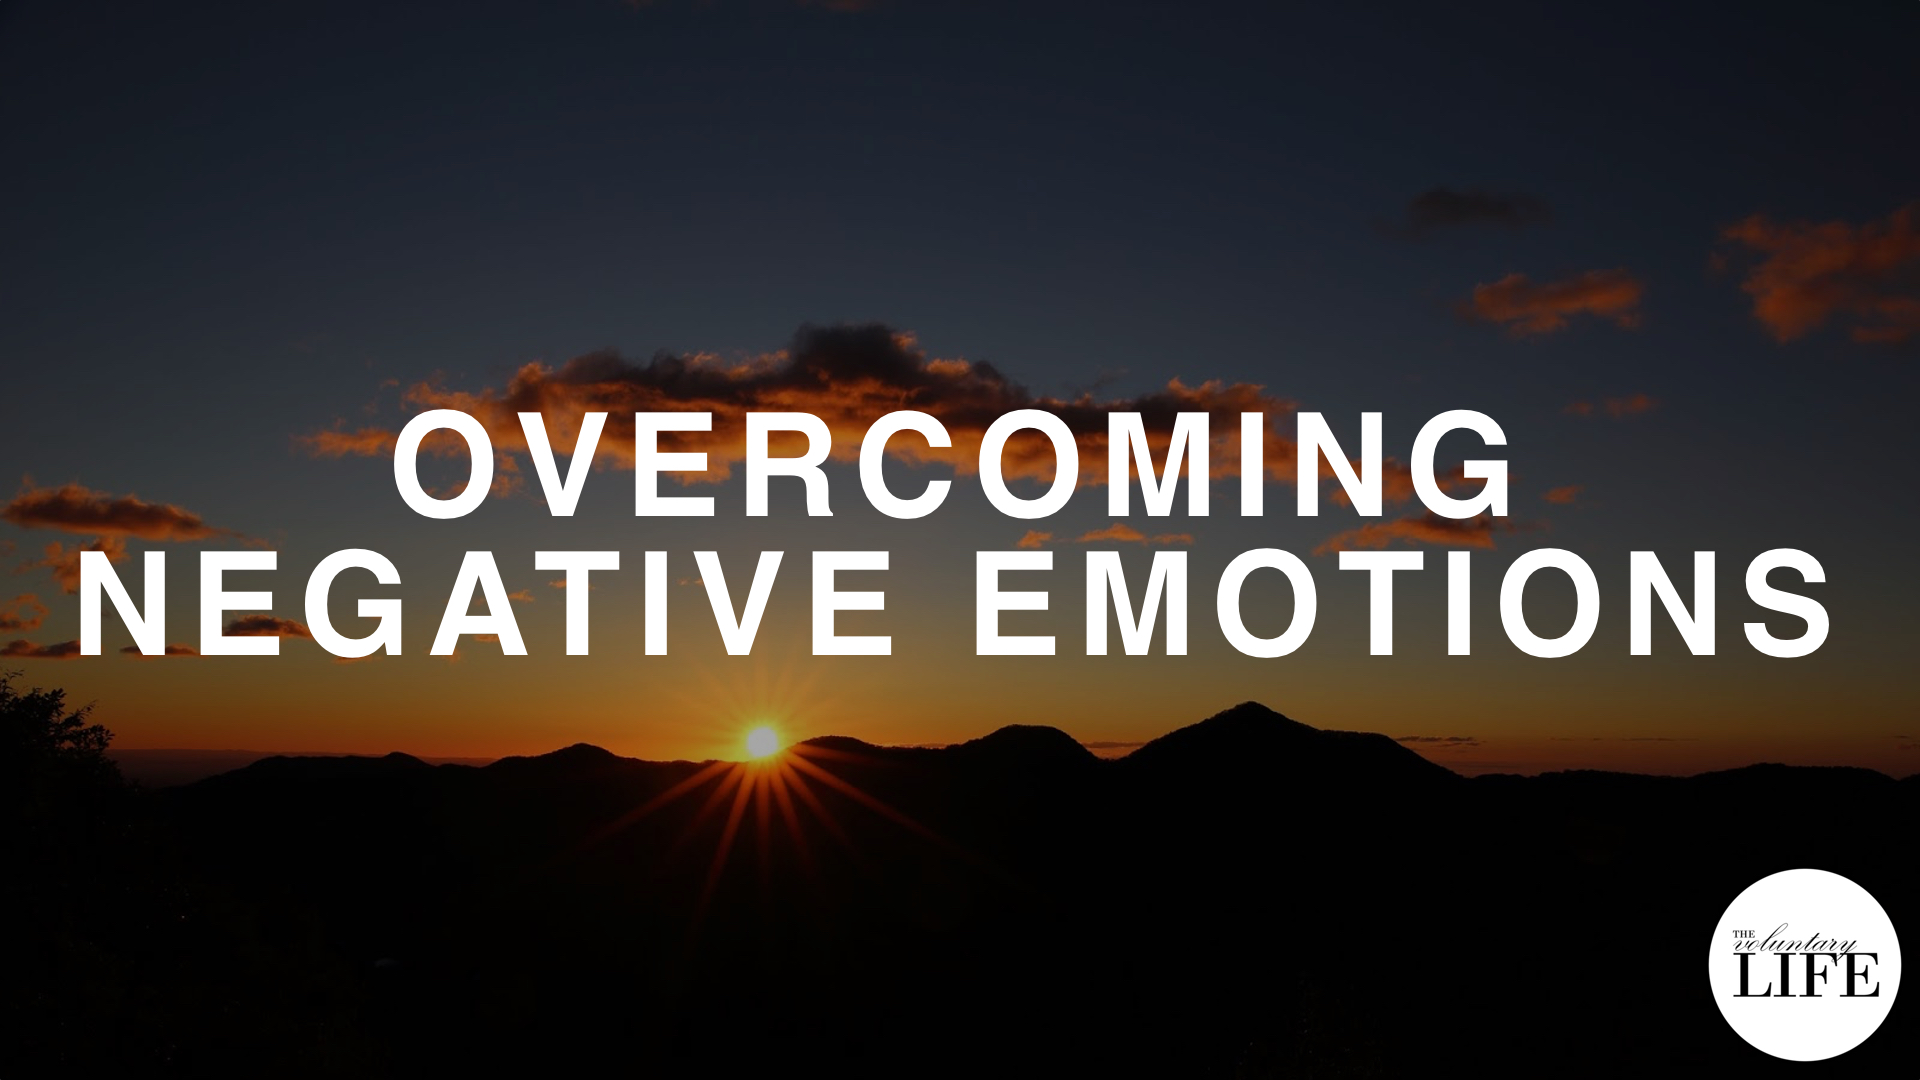 260 Overcoming Negative Emotions